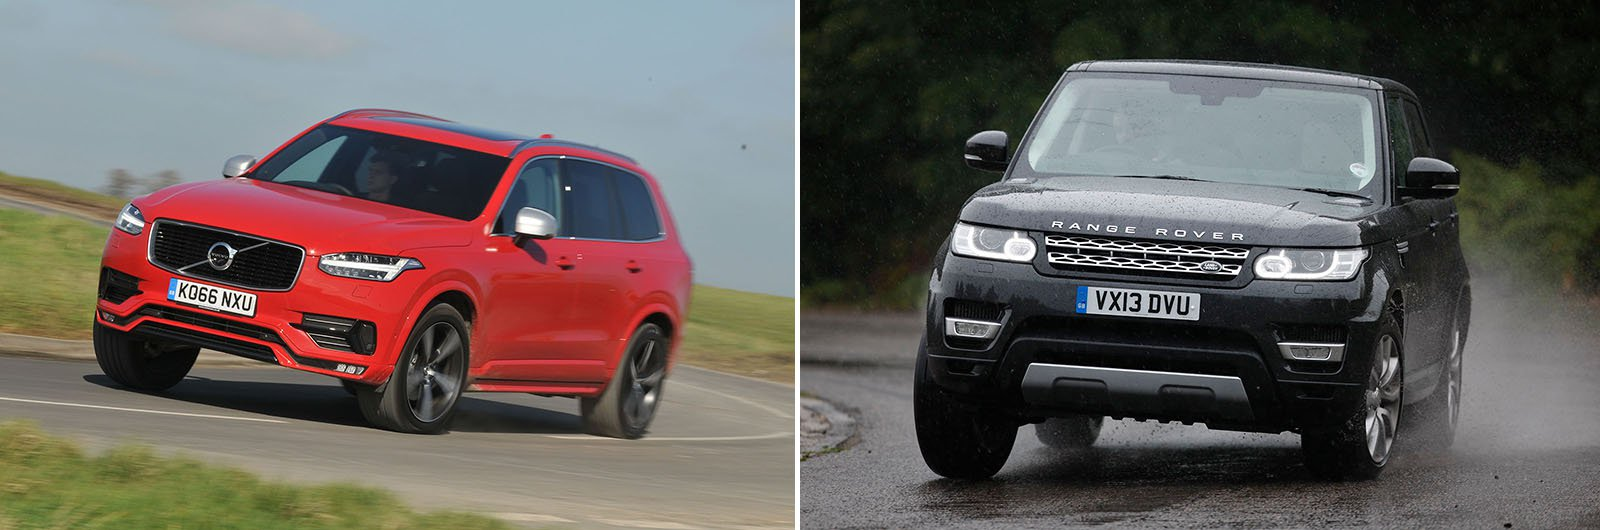 New Volvo XC90 vs used Range Rover Sport: which is best?